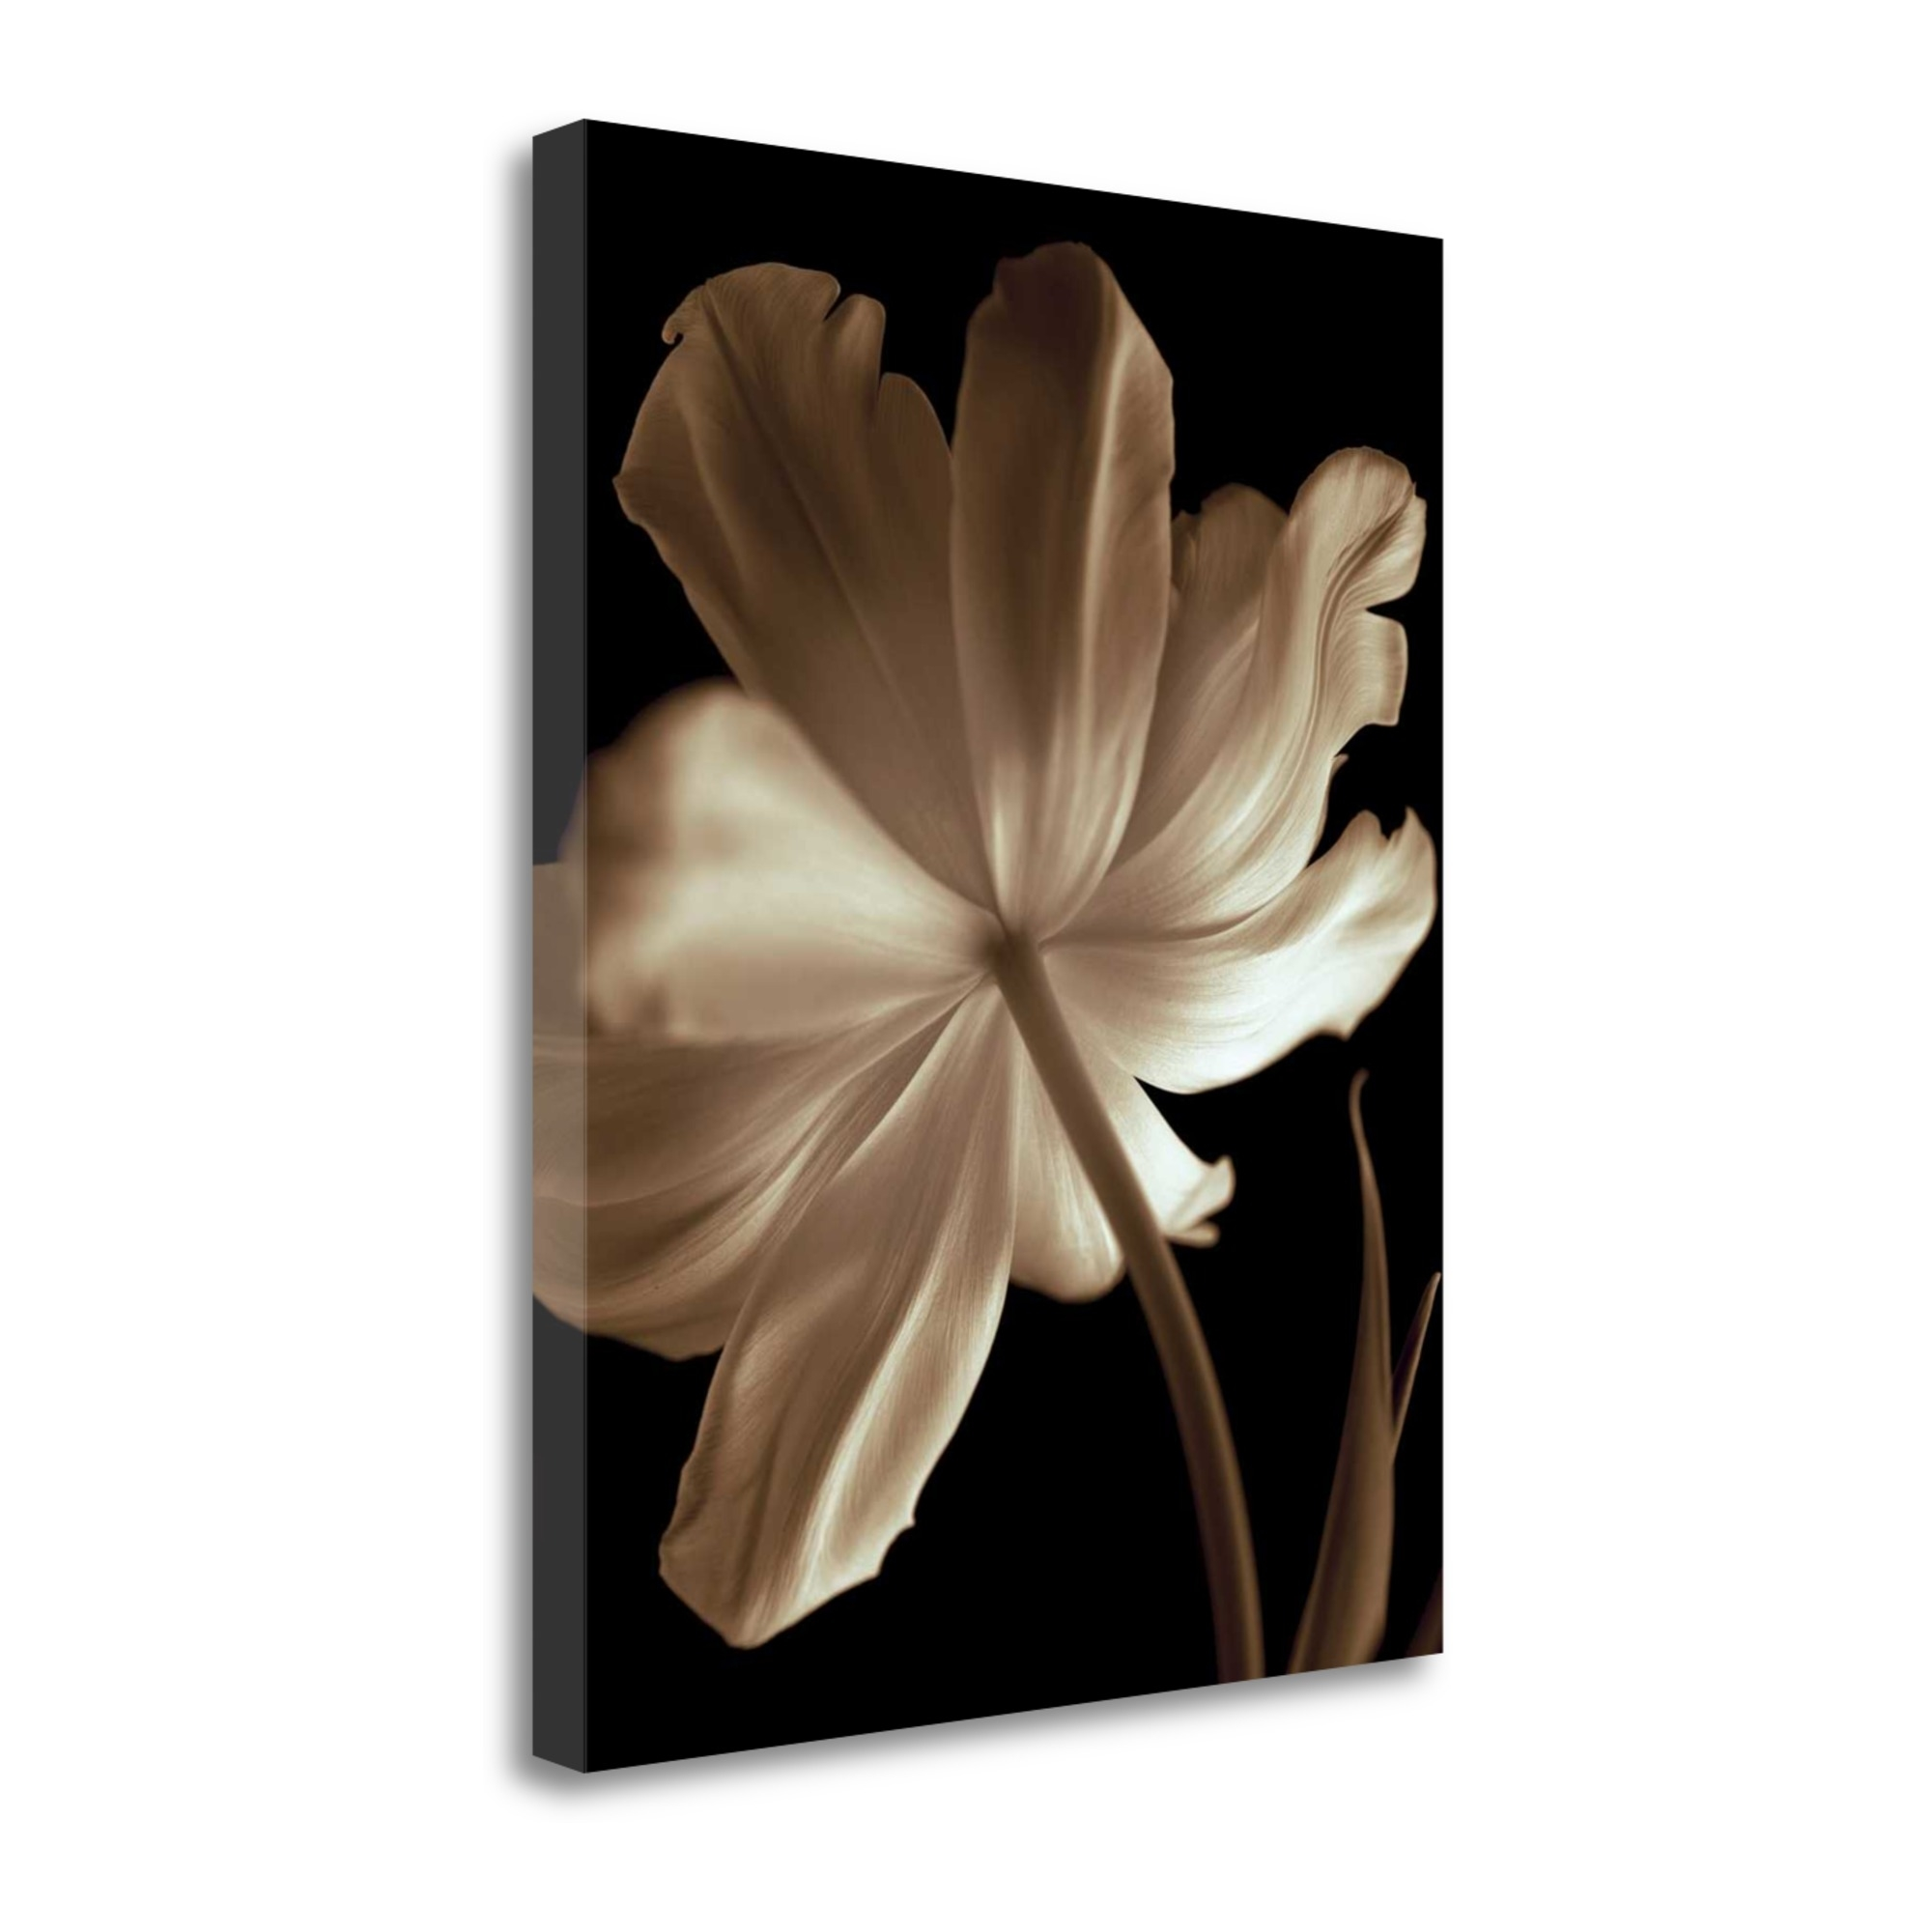 "Champagne Tulip II By Charles Britt, 18"" x 23\"" Fine Art Giclee Print on Gallery Wrap Canvas, Ready to Hang"